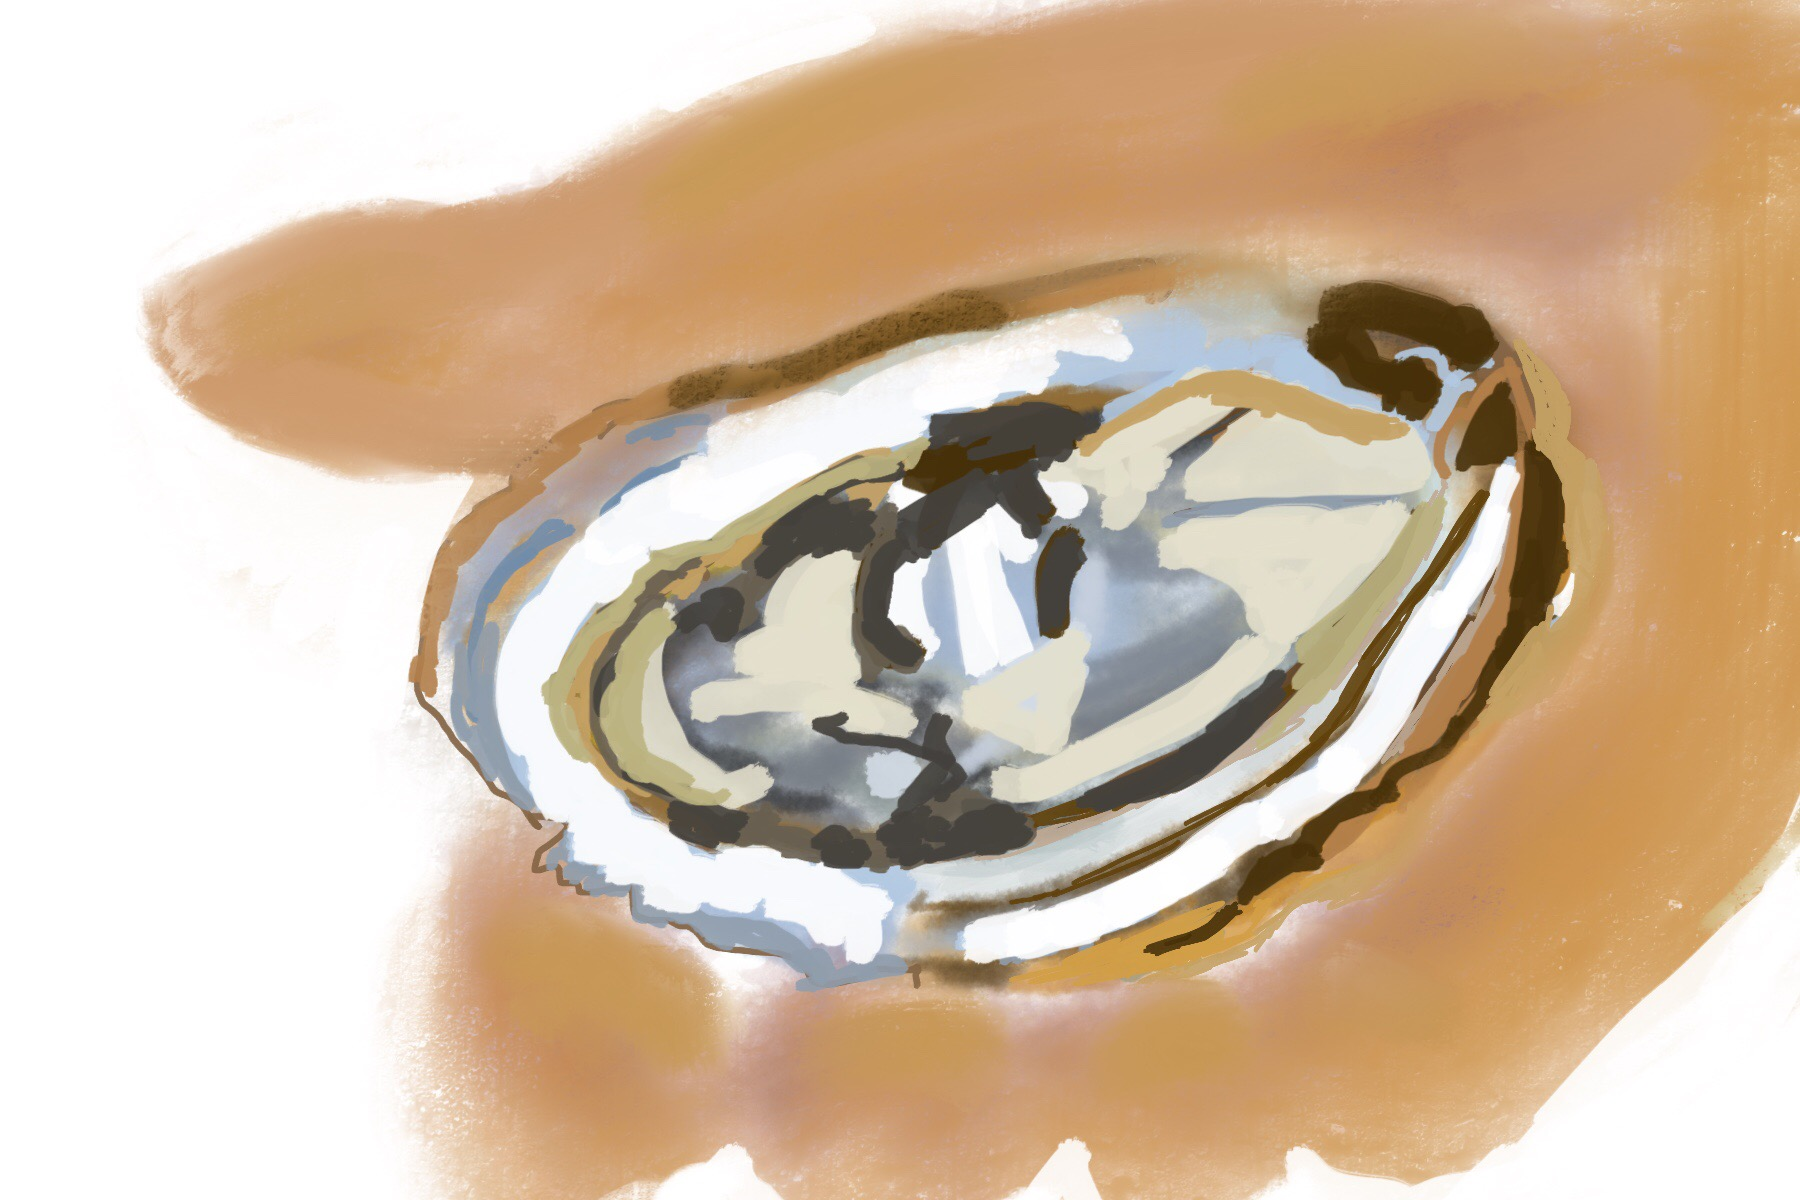 Oyster in hand